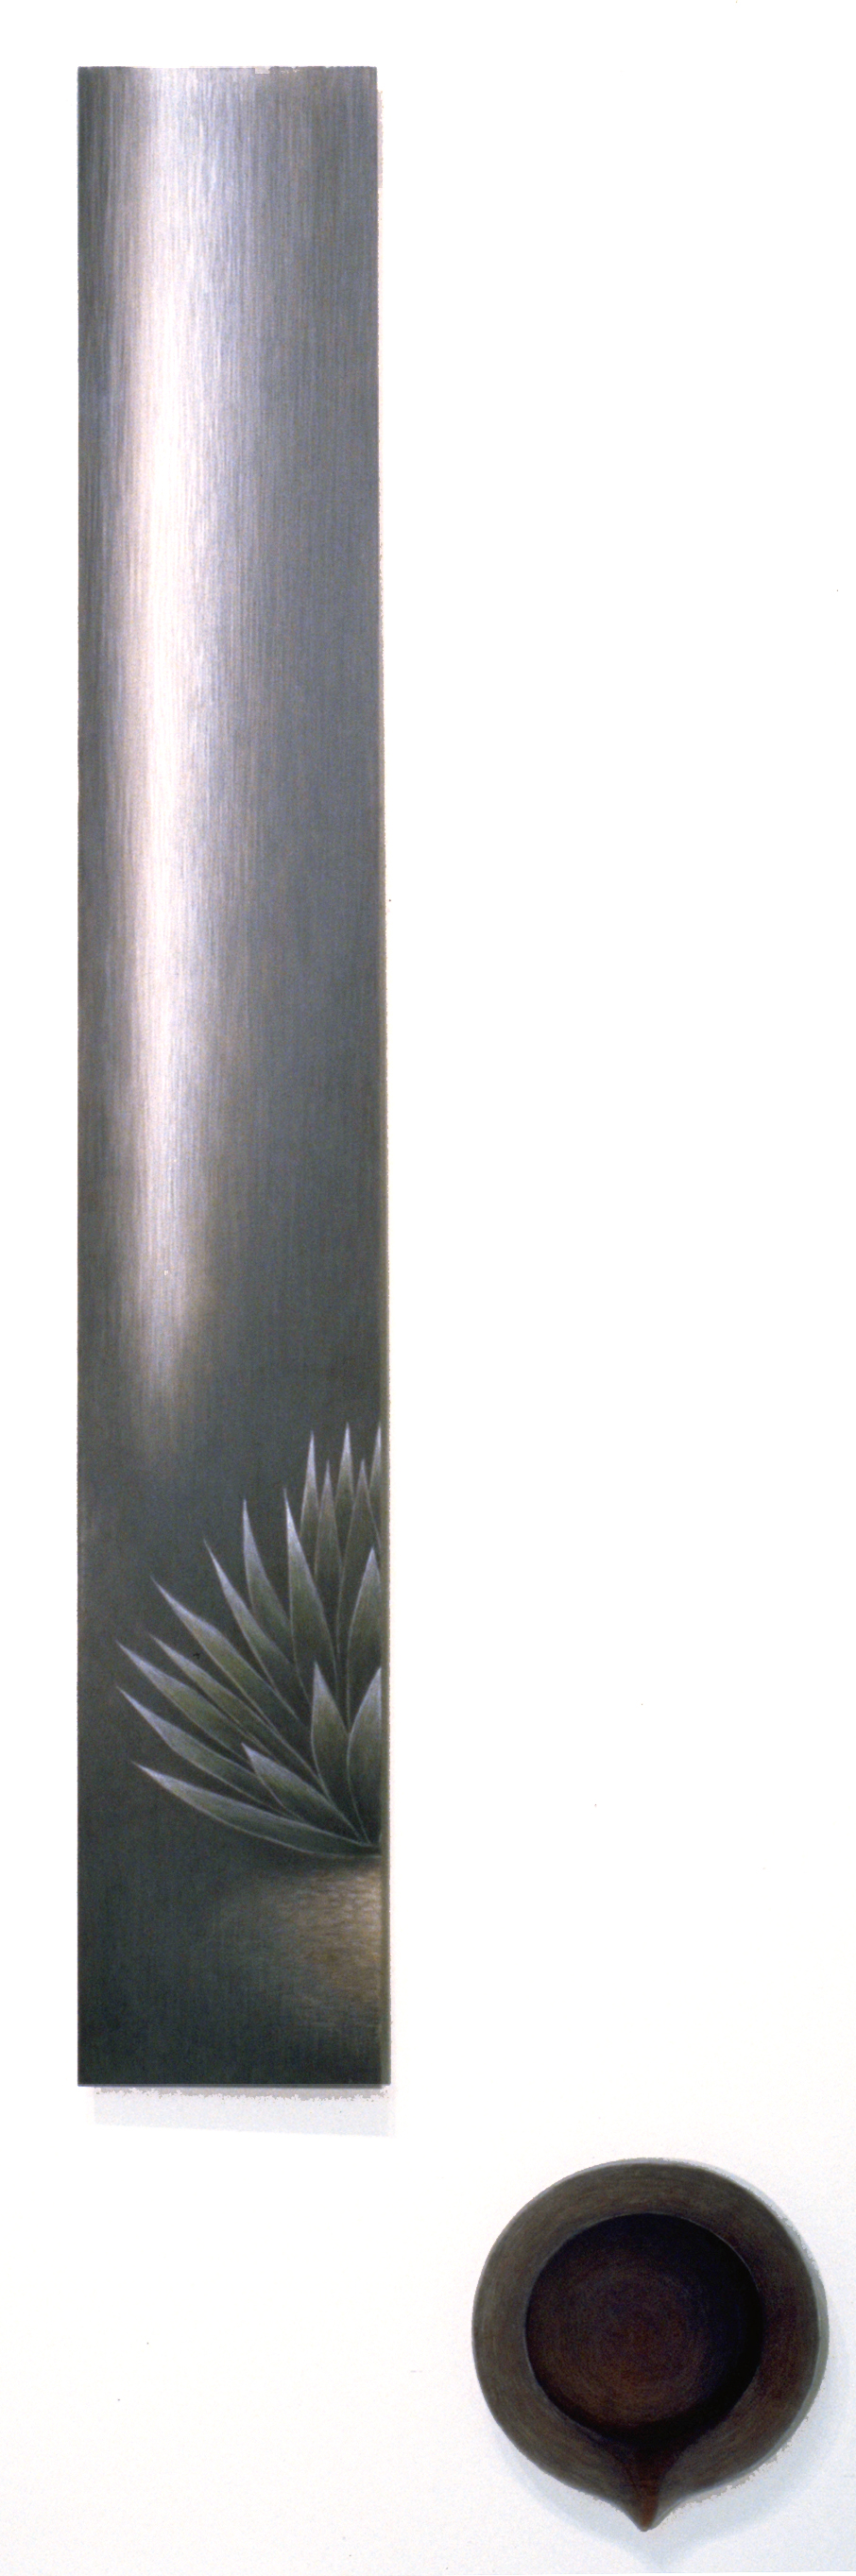 Agave with Vessel,  1997  Acrylic and pismacolor on plexi 60 x 20 x 1 inches